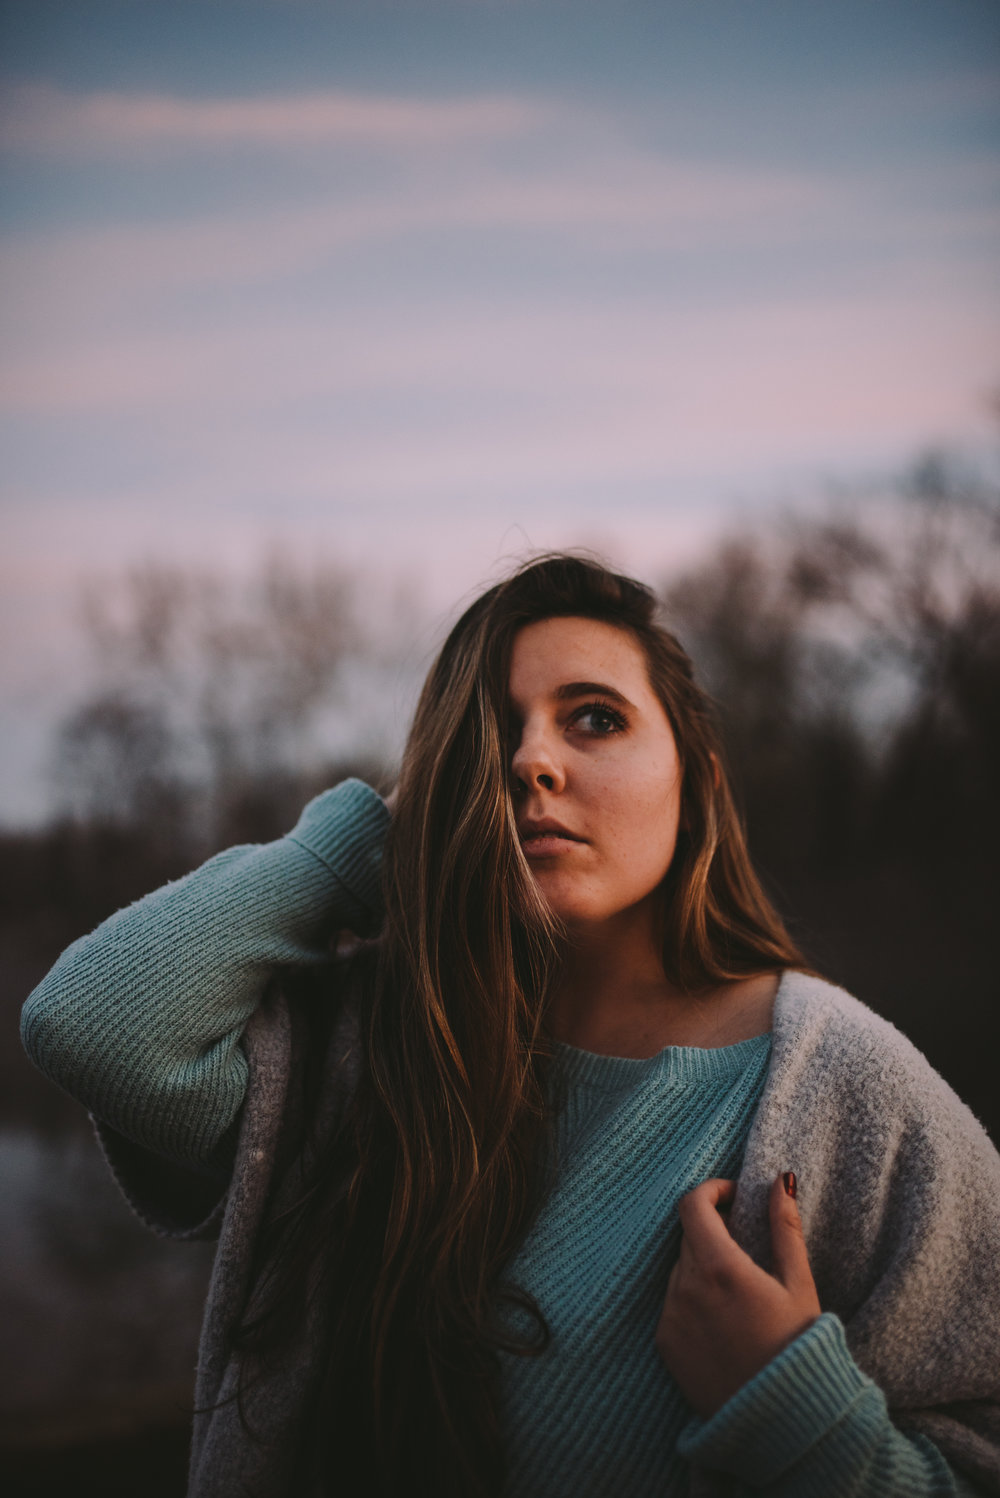 Sunset_IndianapolisIndiana_January2018_Senior Photography In Tempe_ArizonaSeniorPhotographer_SamanthaRosePhotography_final_-16.jpg